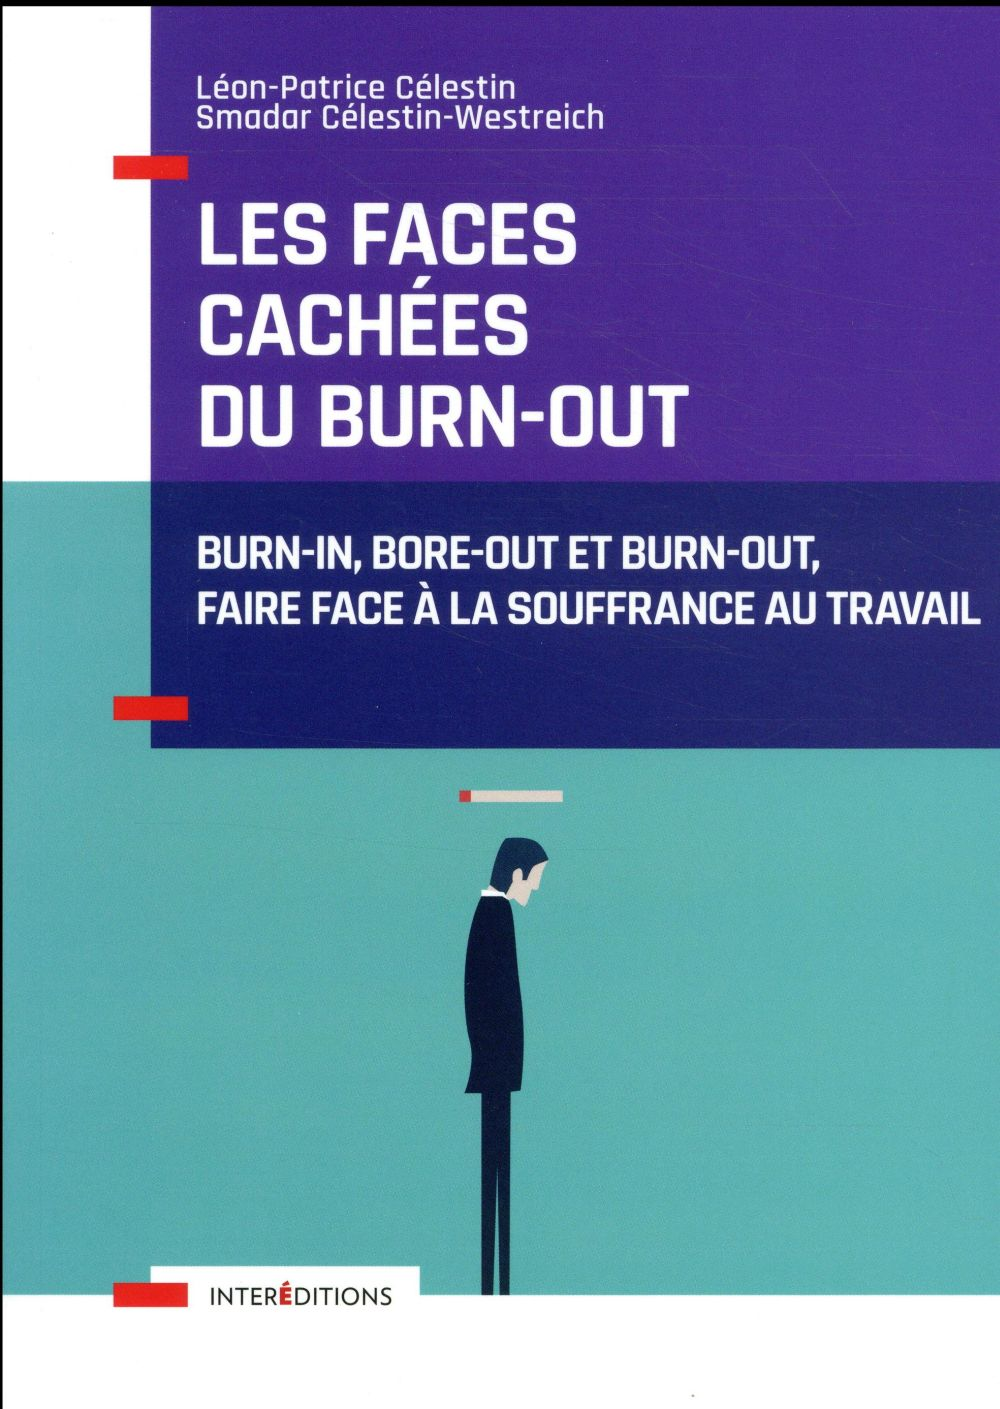 Les faces cachées du burn-out ; burn-in, bore-out et burn-out, faire face à la souffrance au travail